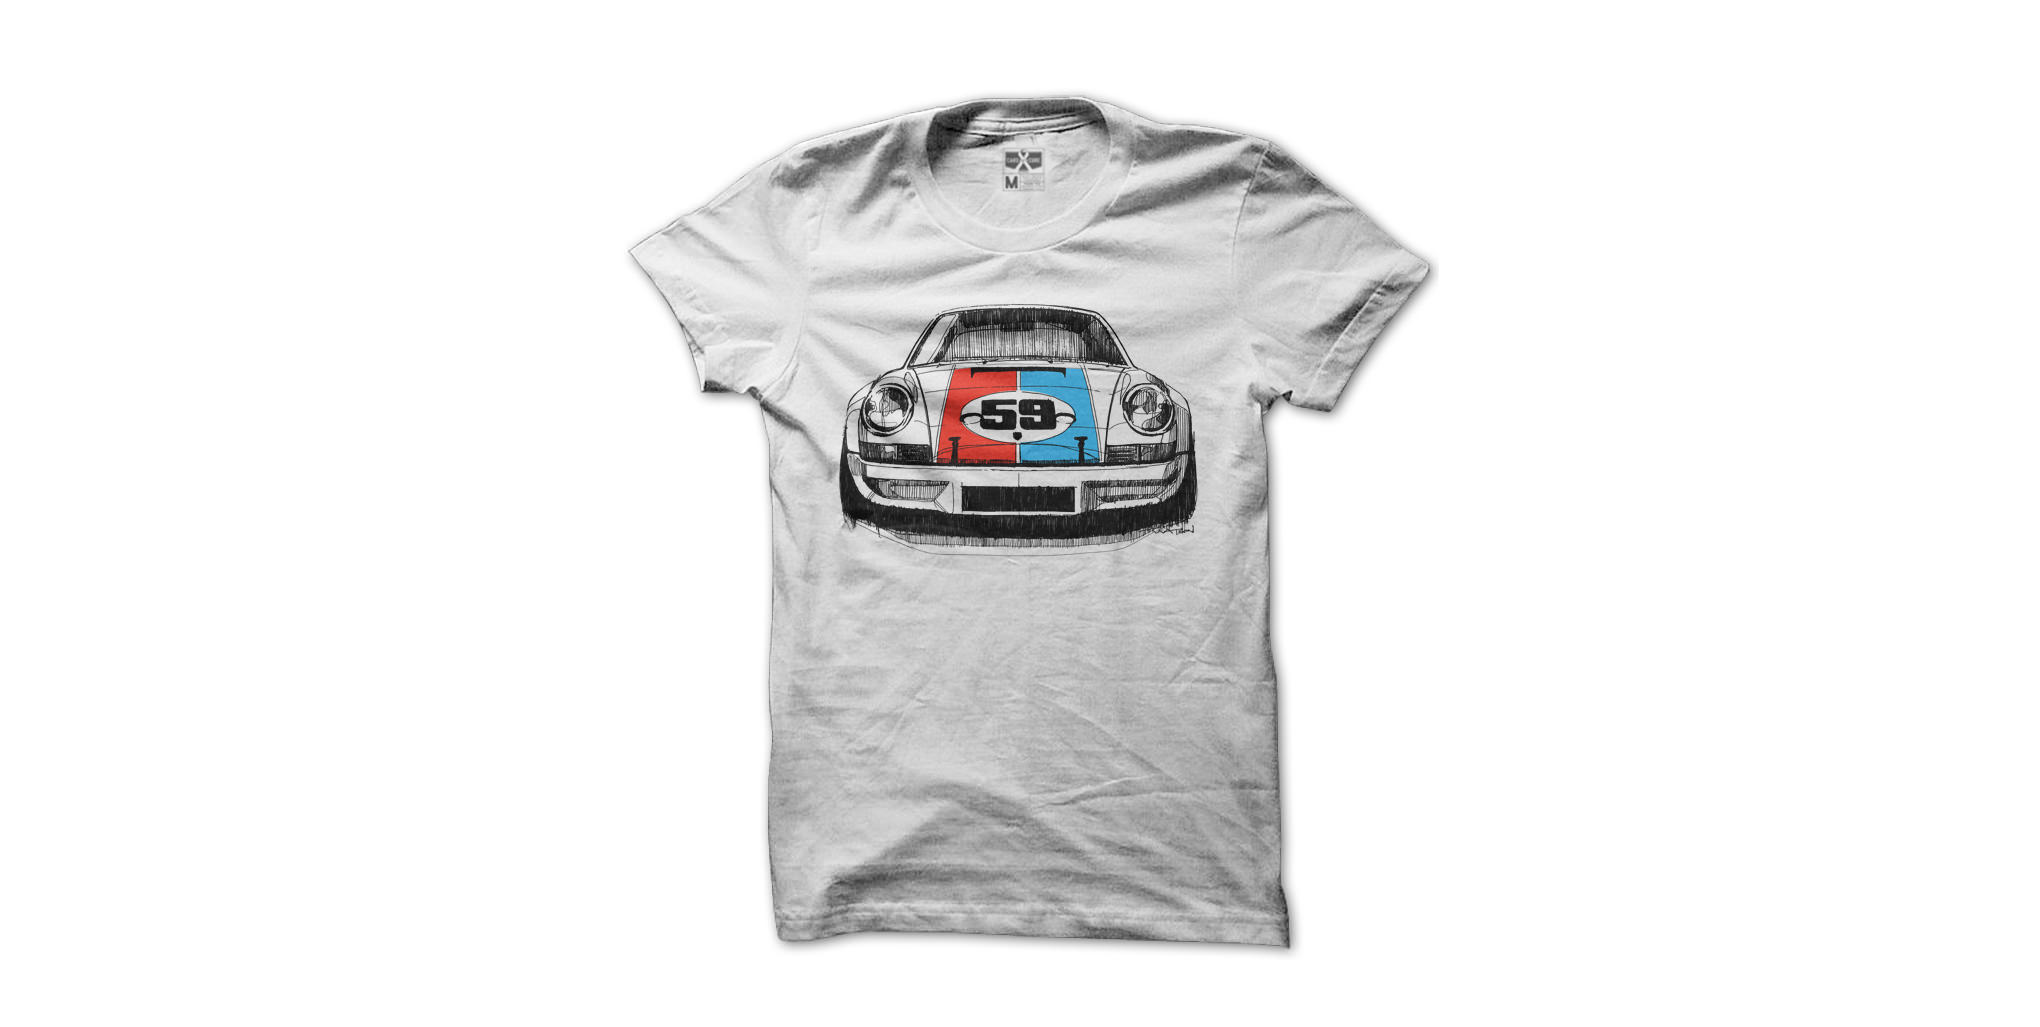 Porsche 911 Rsr Tee By Cars For A Cure